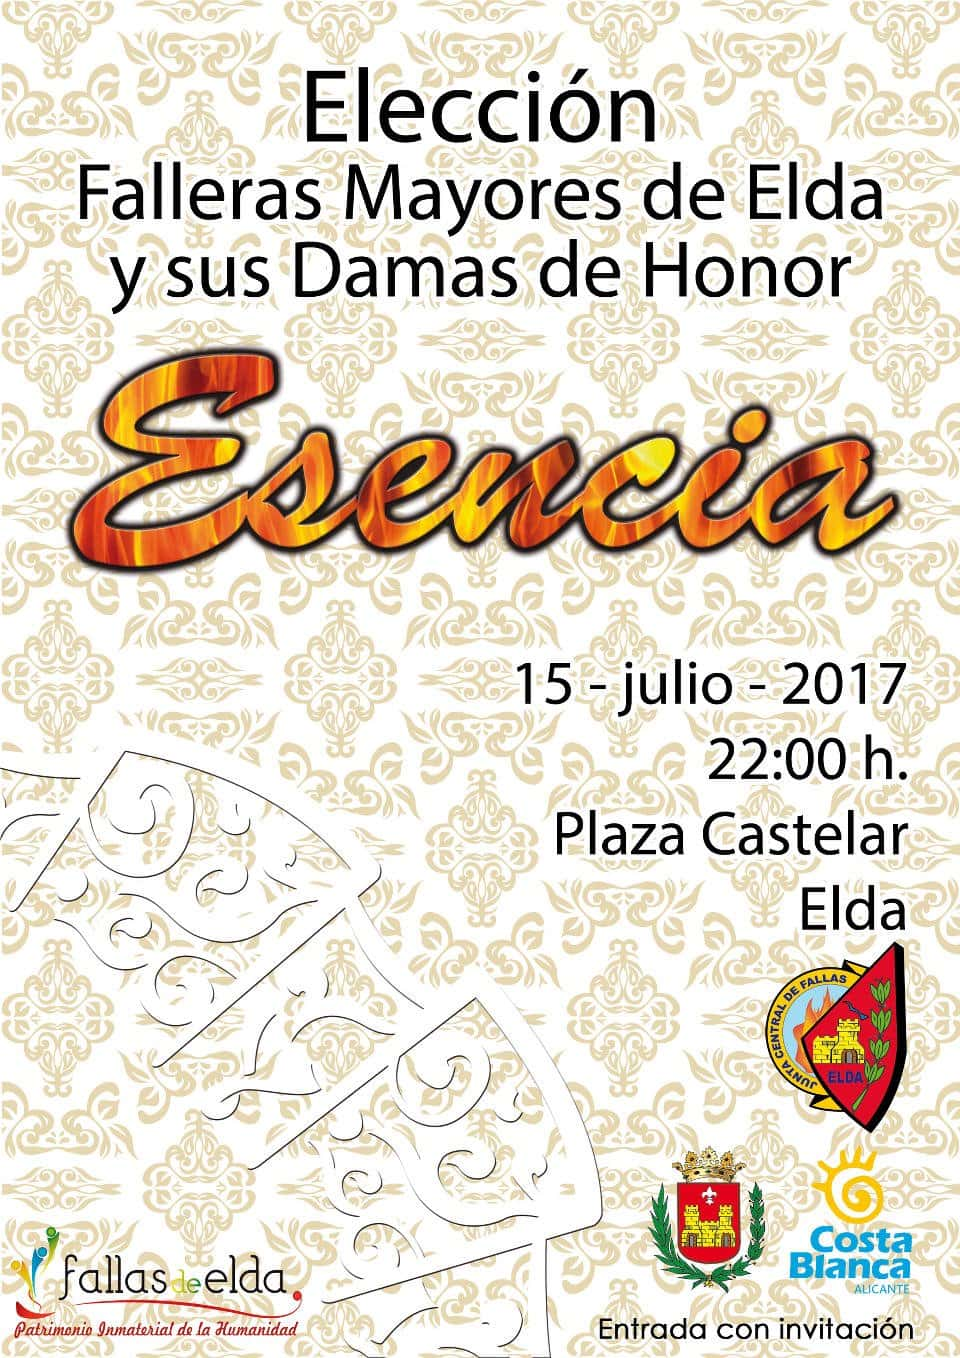 Choice of the Falleras Mayores of Elda and her Ladies of Honor to the Fallas 2017